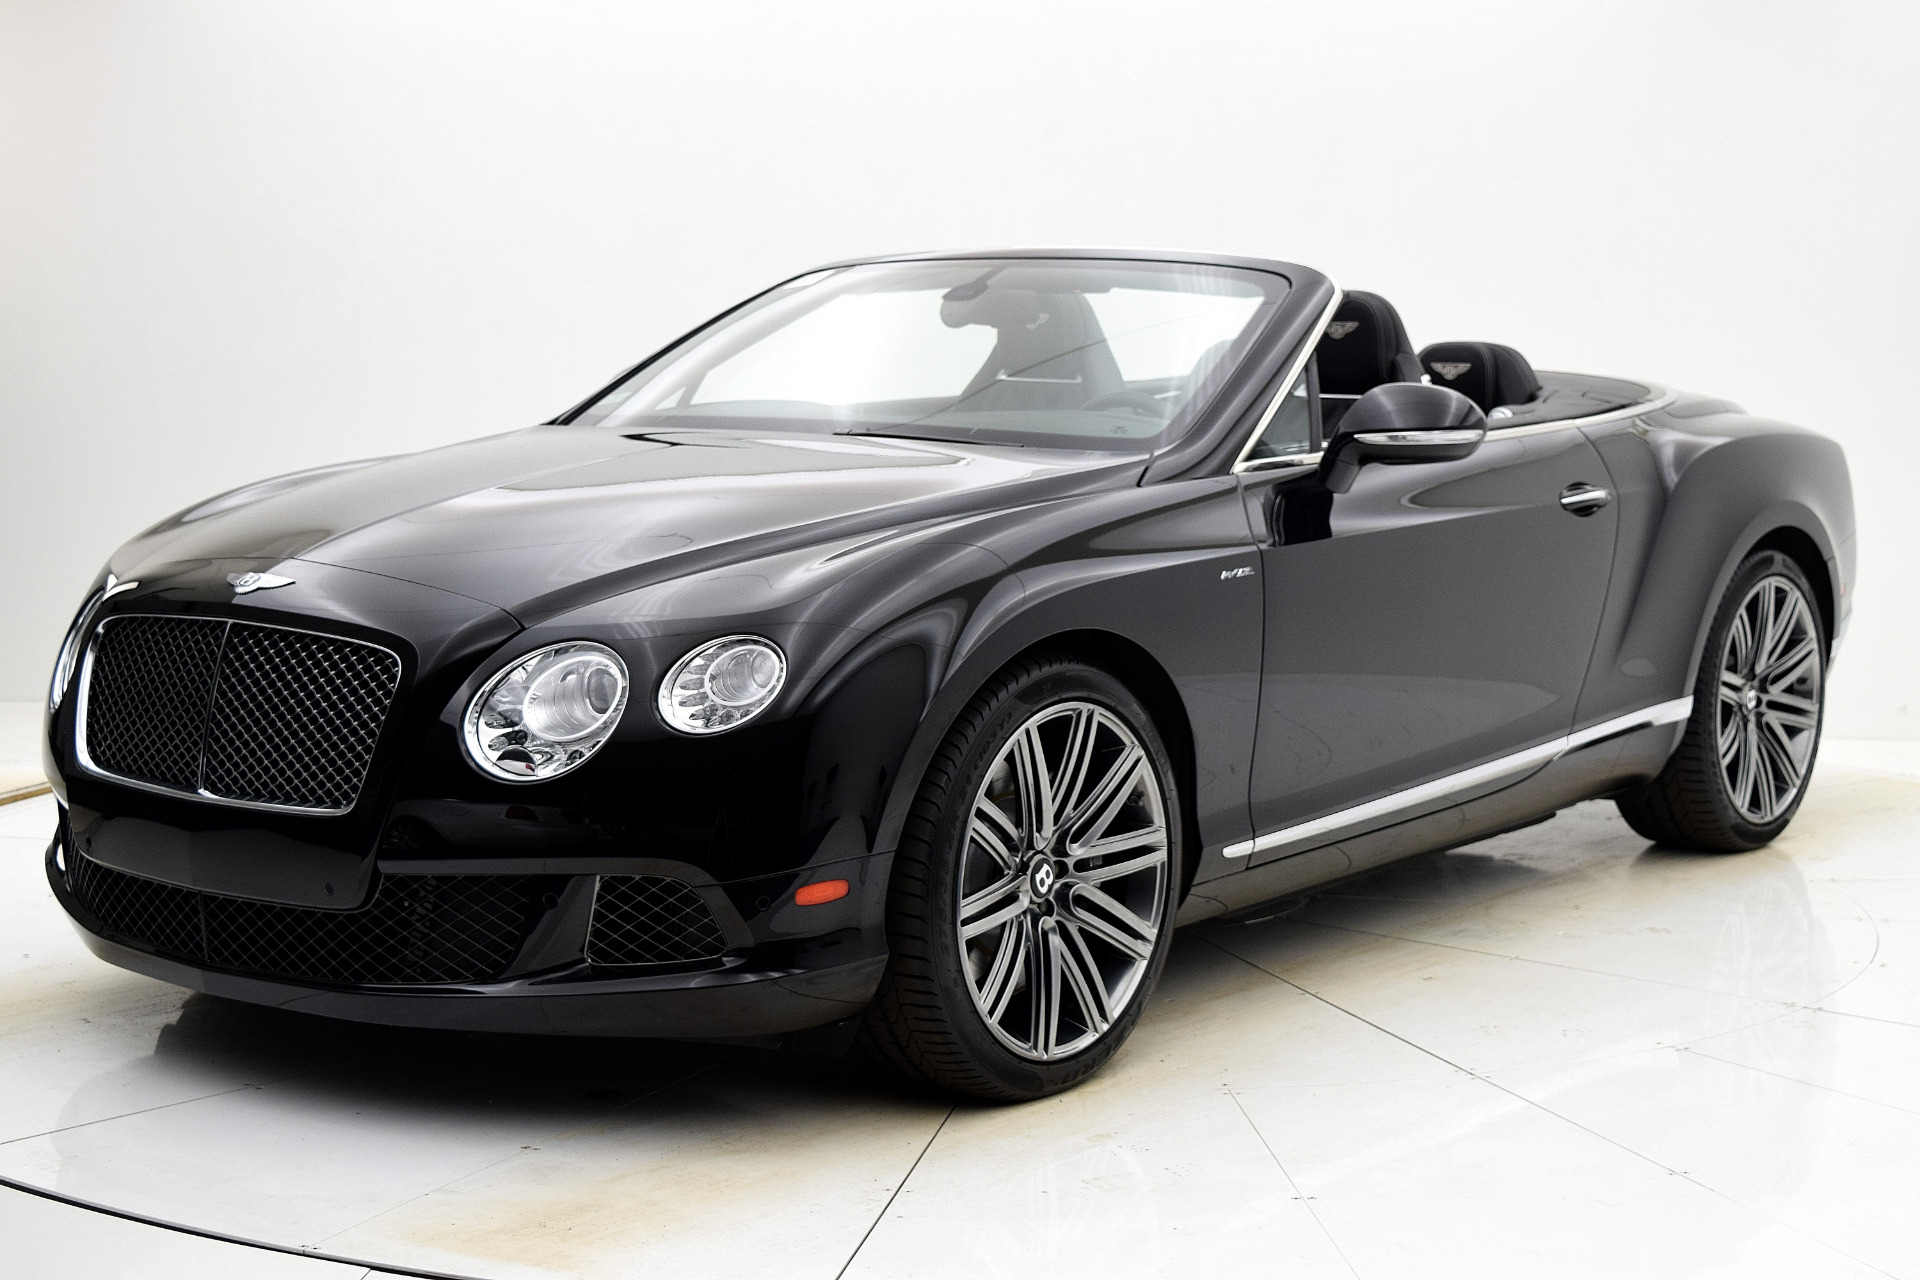 Used 2014 Bentley Continental GT Speed Convertible for sale $125,880 at Bentley Palmyra N.J. in Palmyra NJ 08065 2